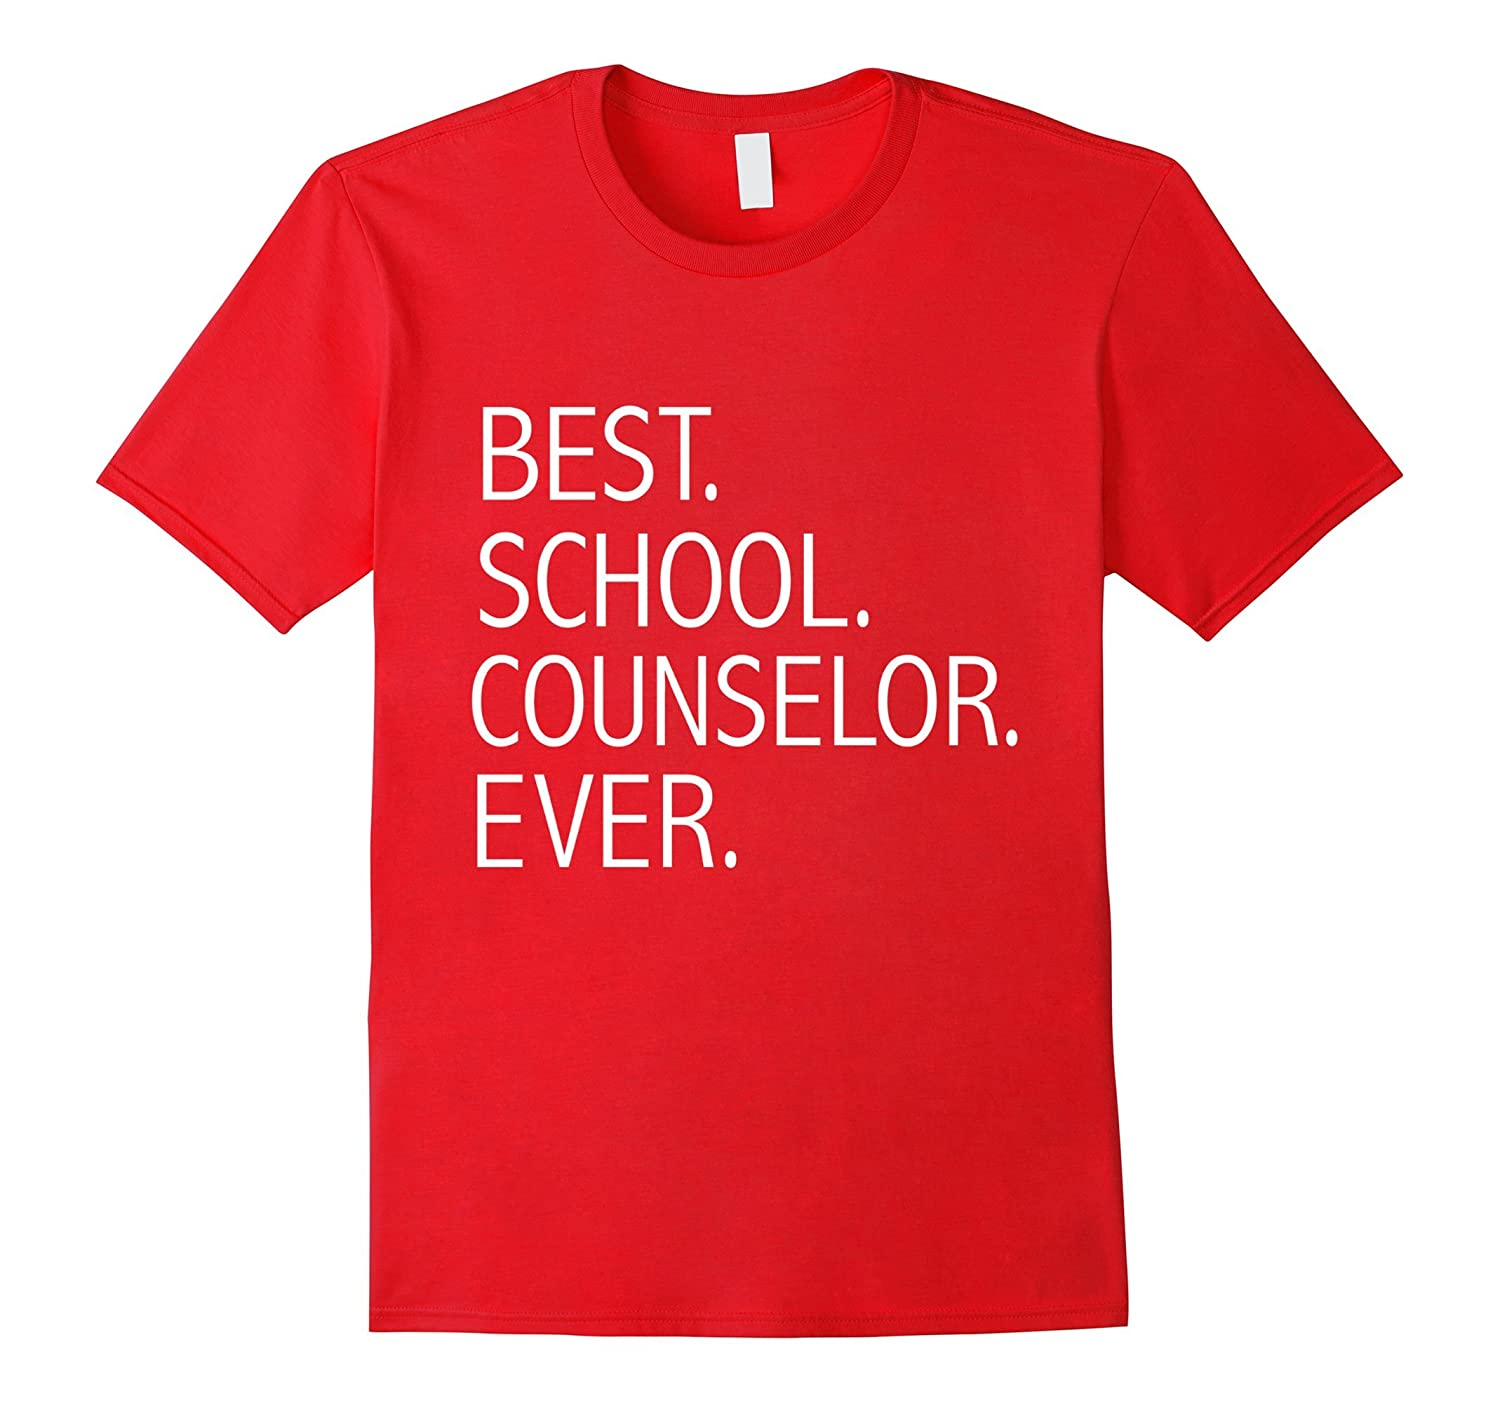 Best School Counselor Ever Funny T-shirt Guidance Counselor-CL